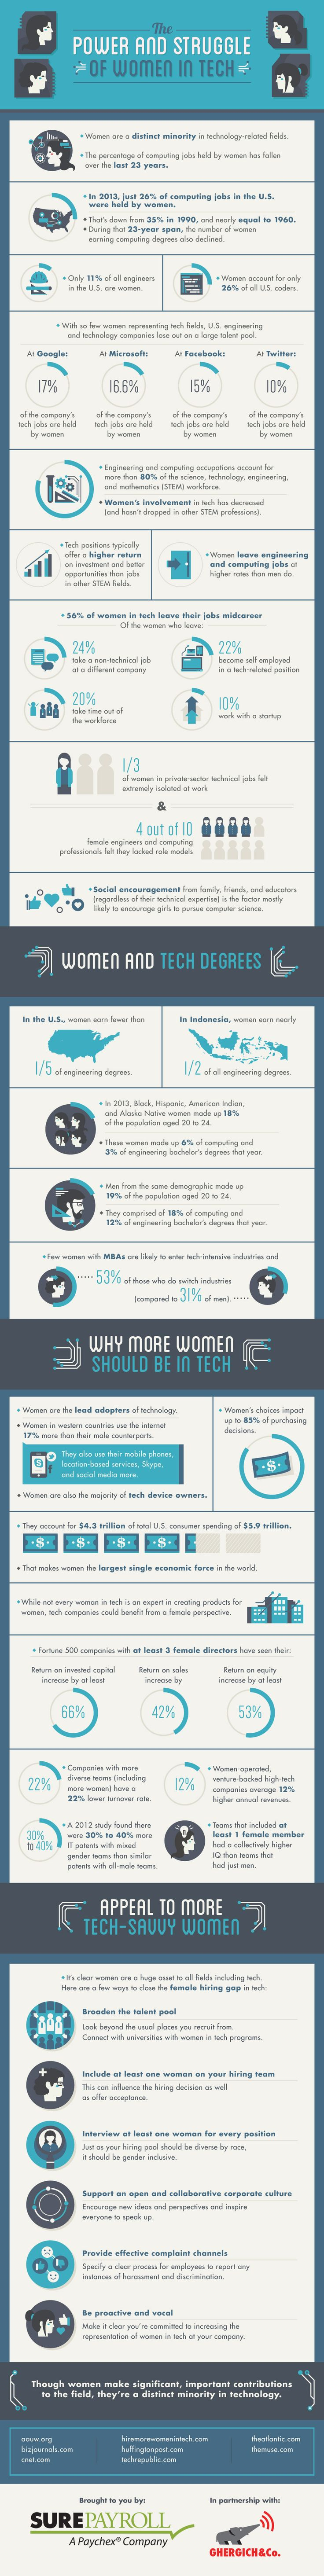 The Power and Struggle of Women in Tech #infographic #Tech #Women